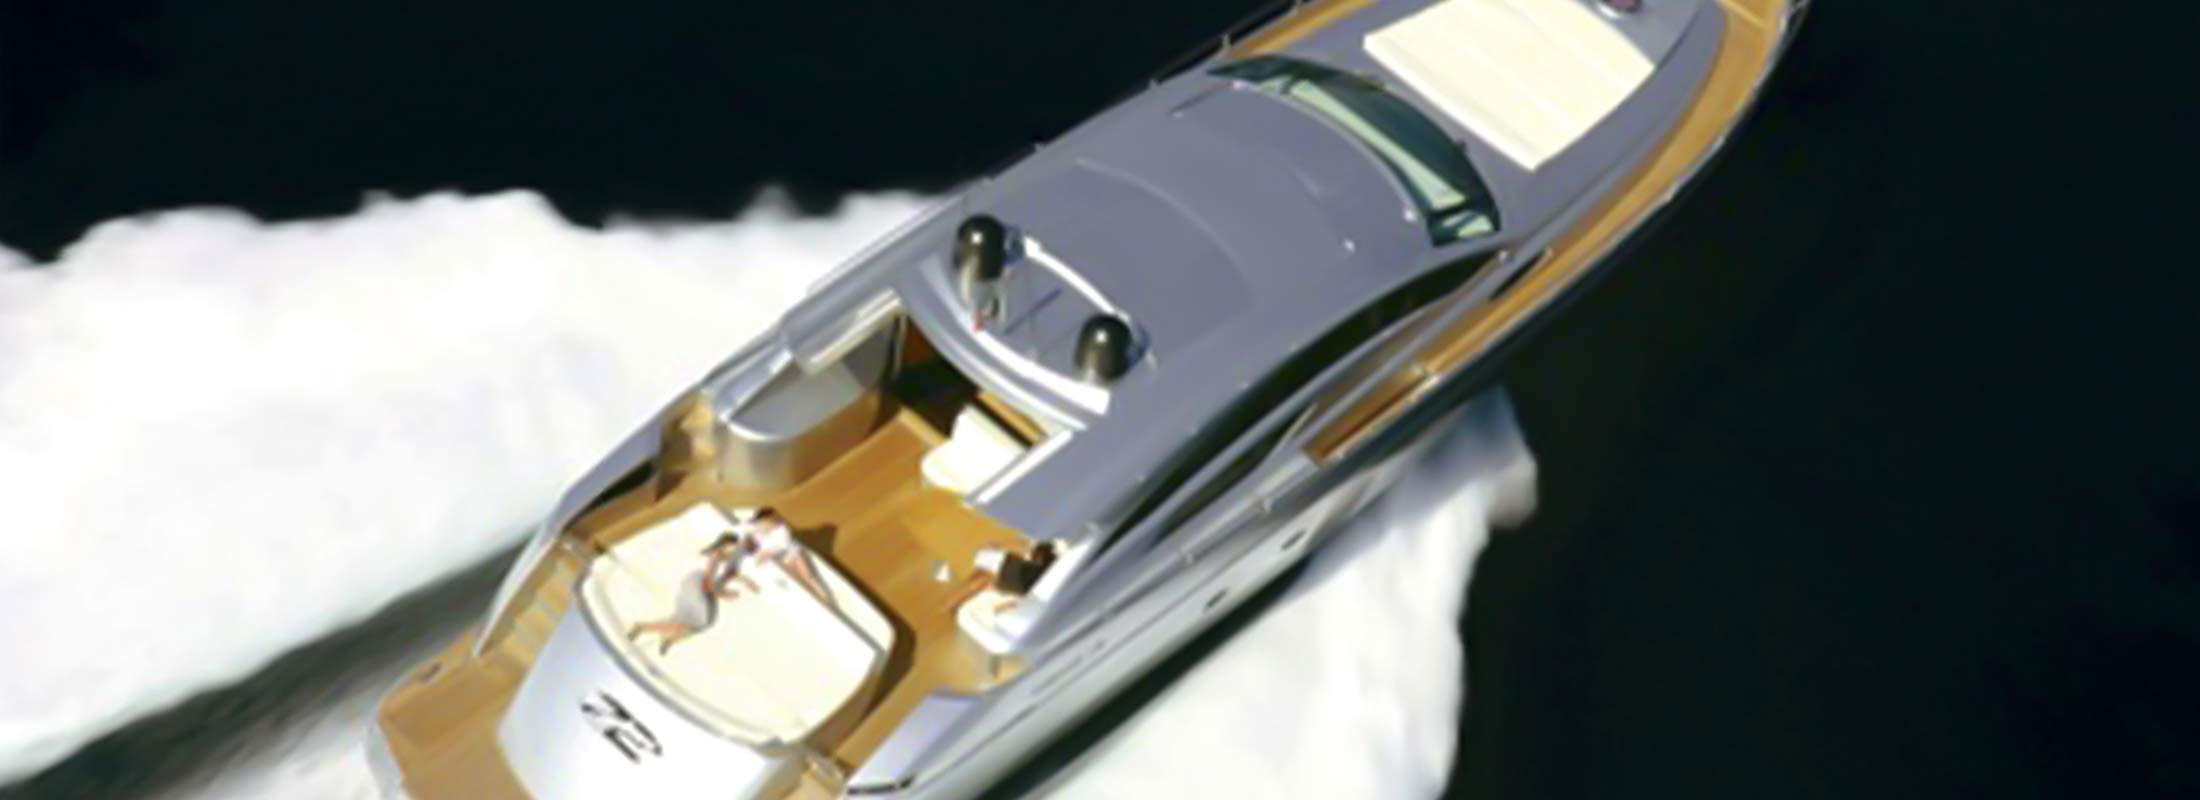 Angels Demons Motor Yacht for Charter Mediterranean slider 3